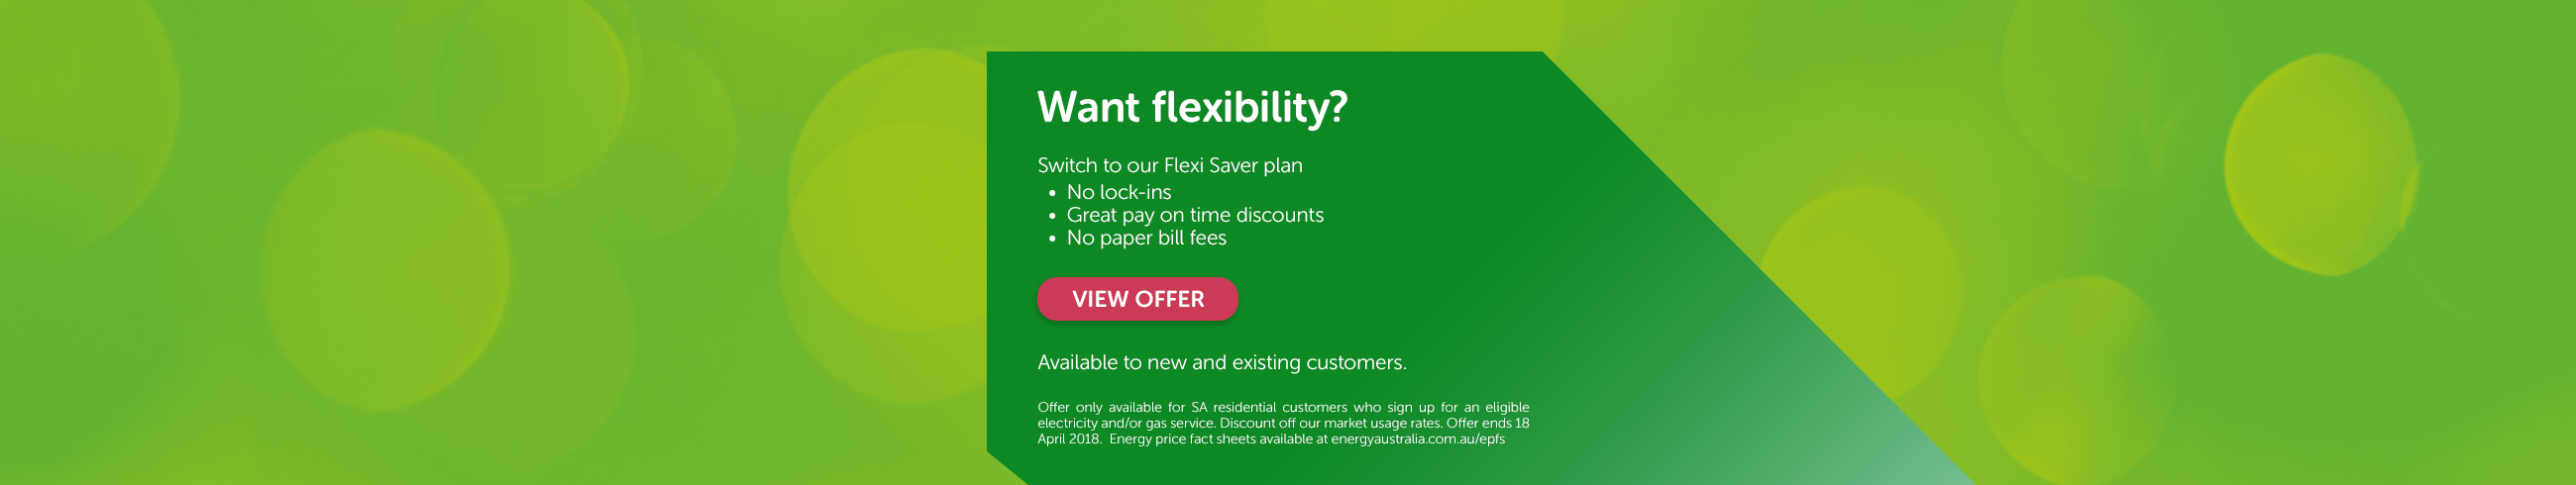 Switch to our Flexi Saver plan